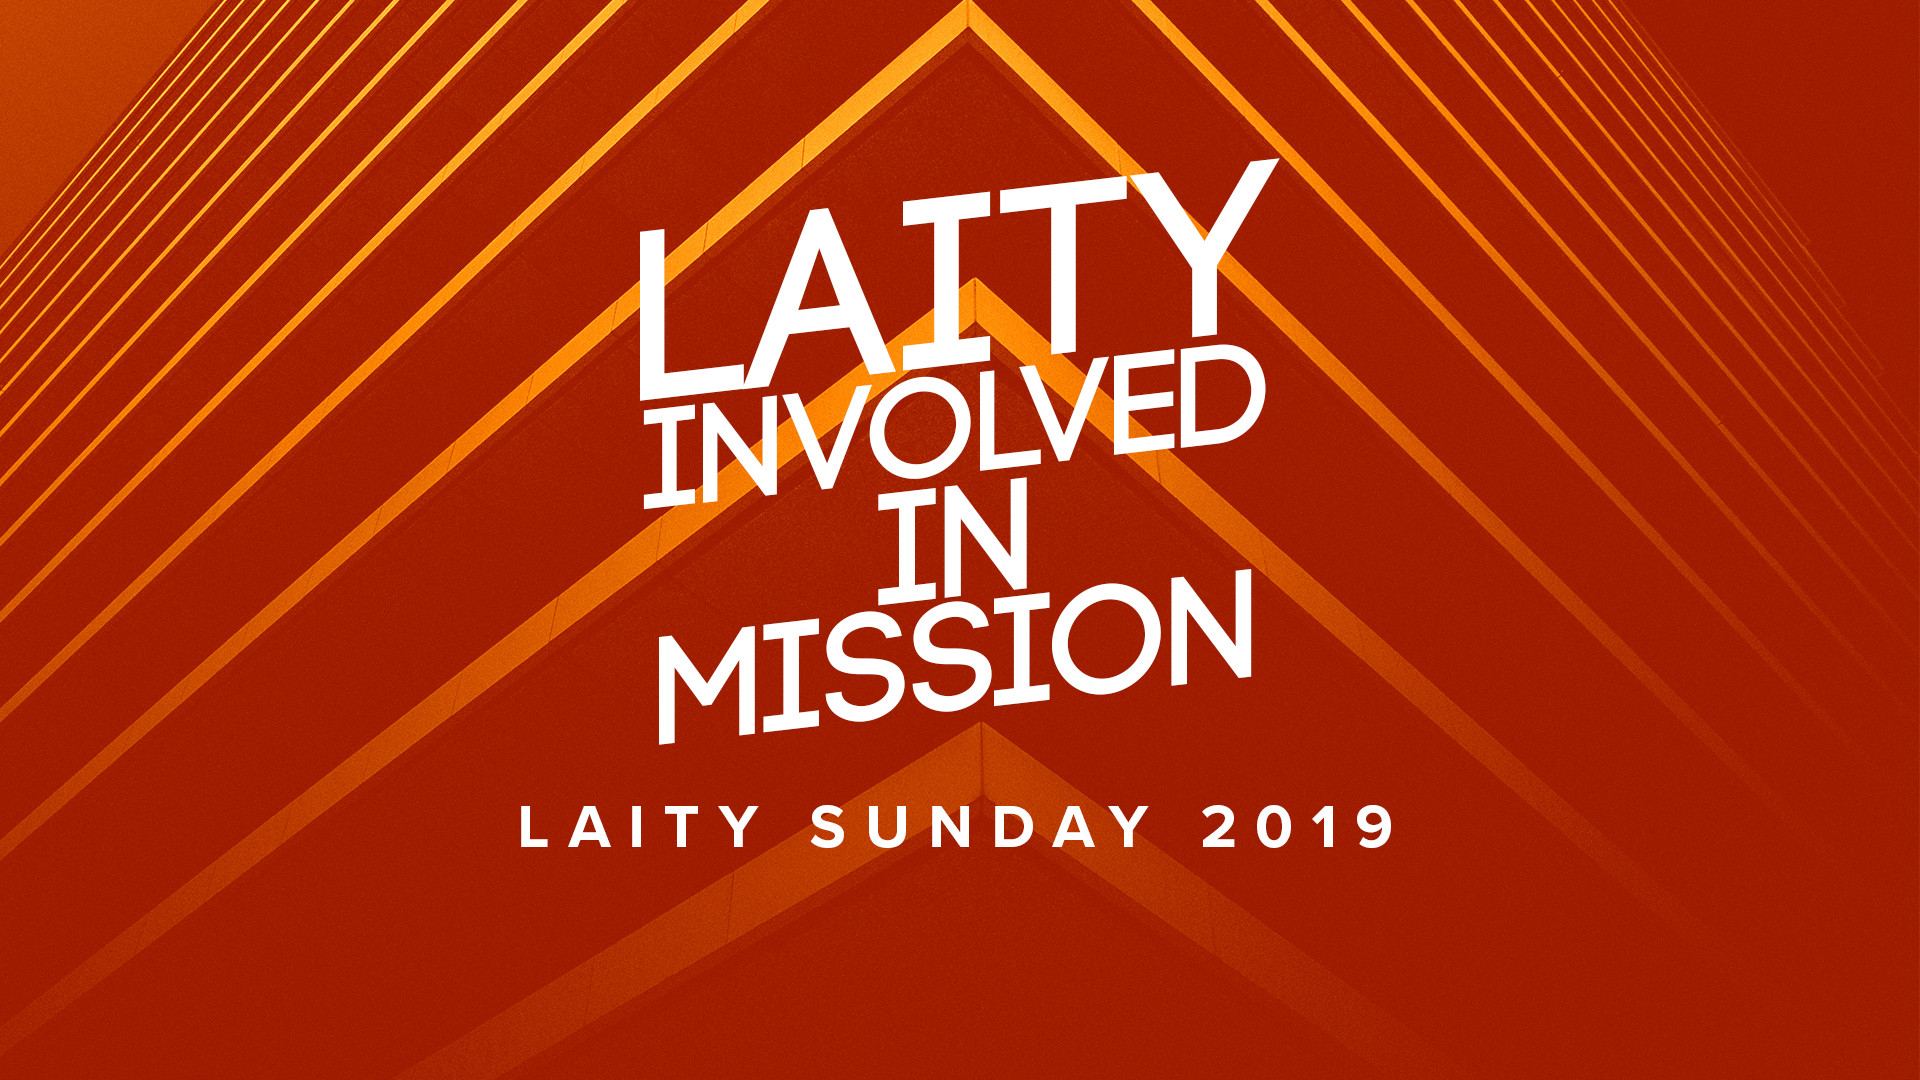 """""""Laity Involved In Mission"""" (Laity Sunday 2020) - Asbury  United Methodist Church Liturgical Readings 2021"""